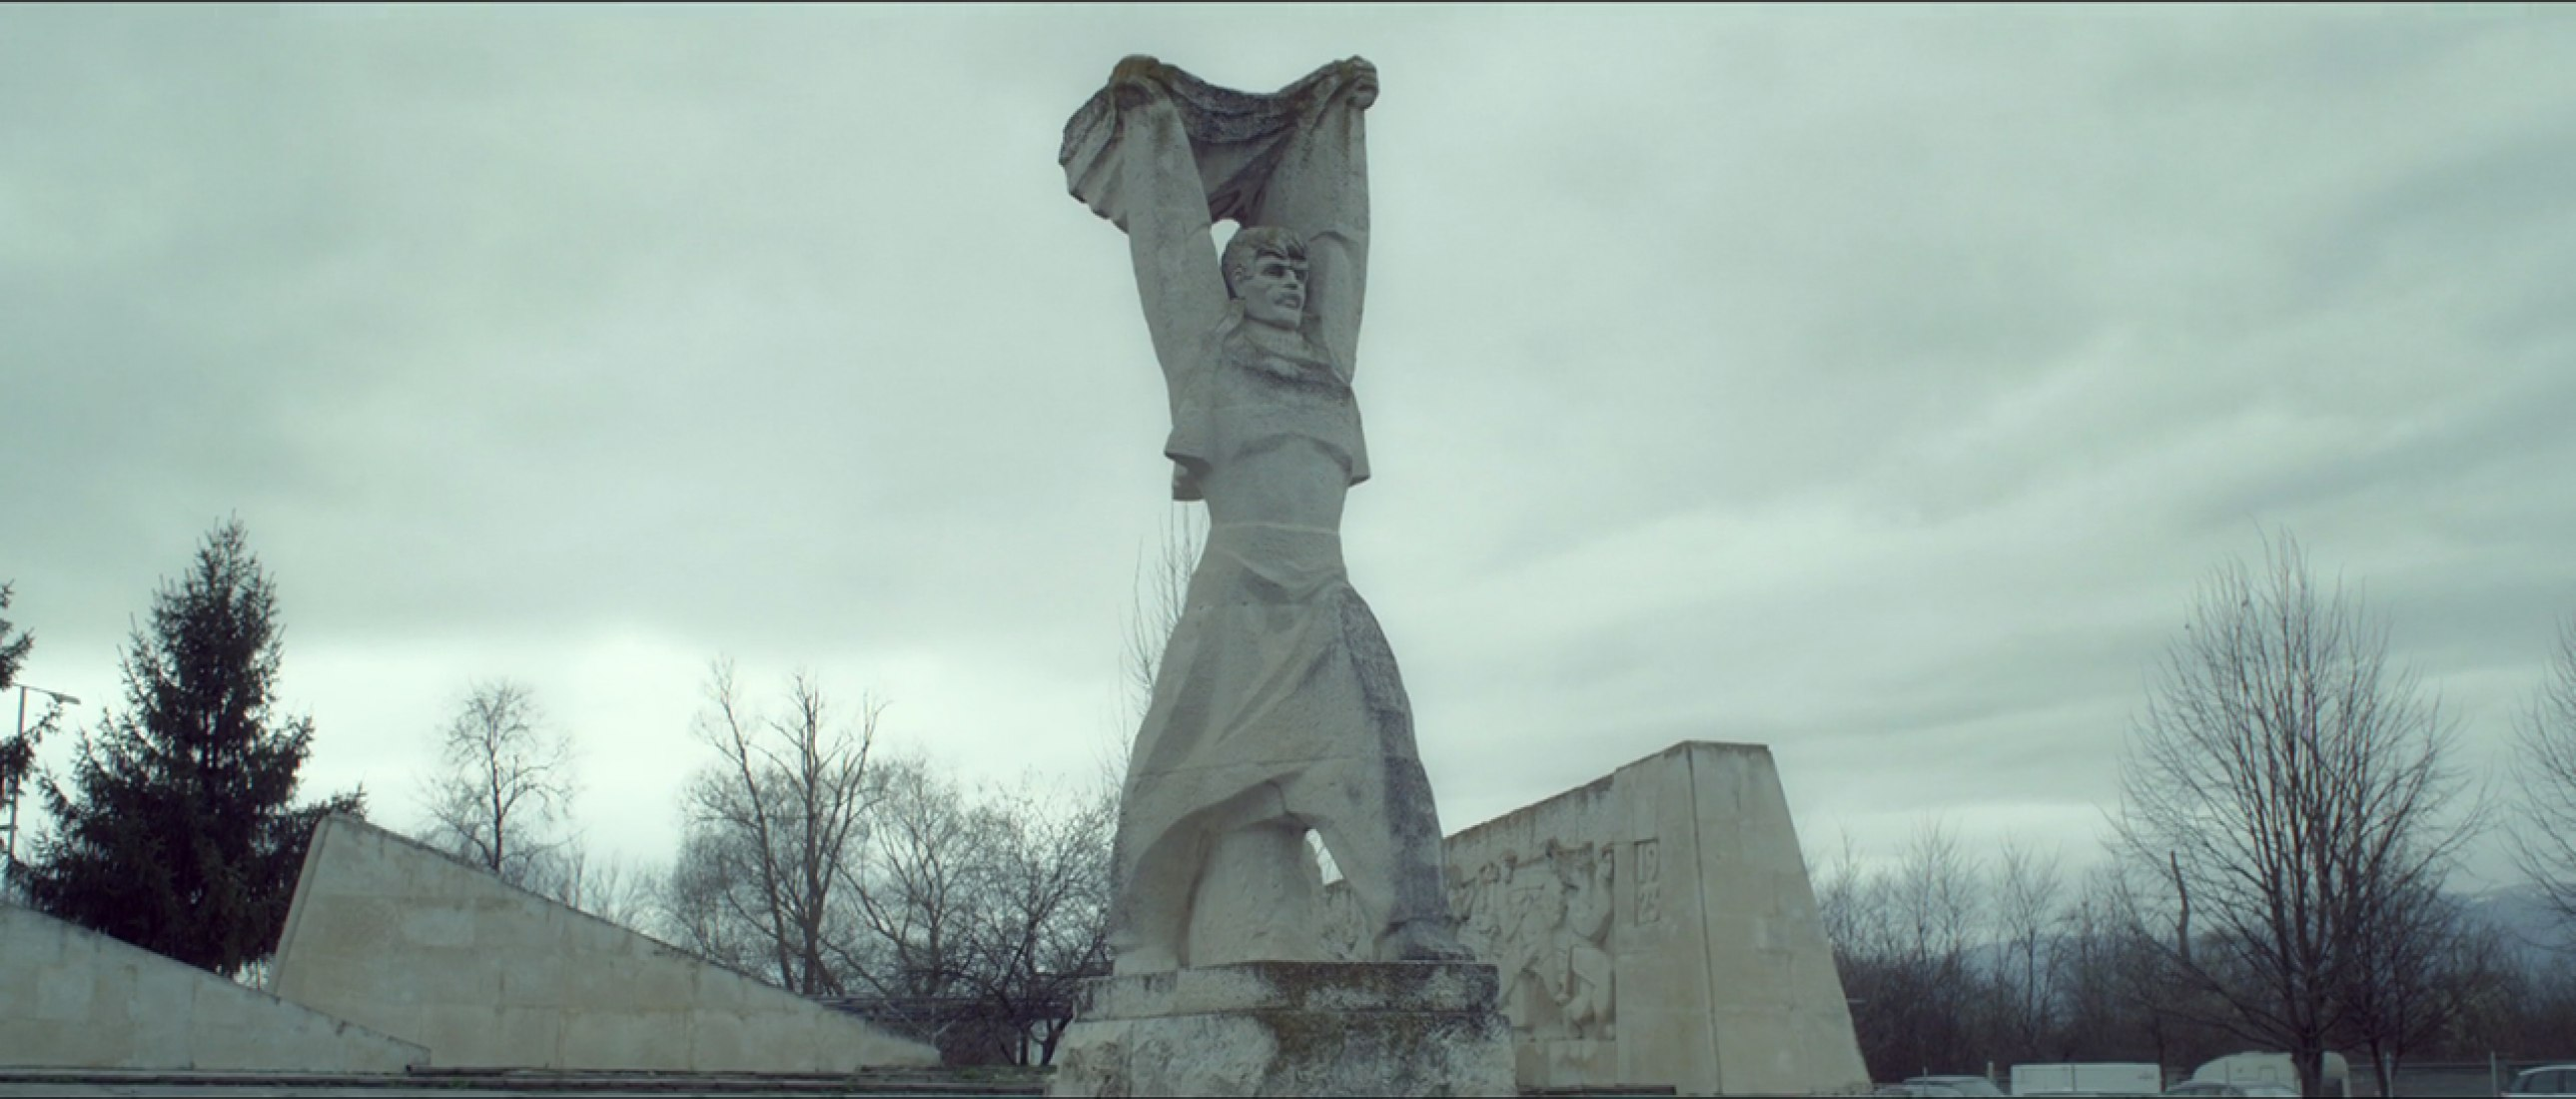 Music video directed by Cyprien Clément-Delmas for